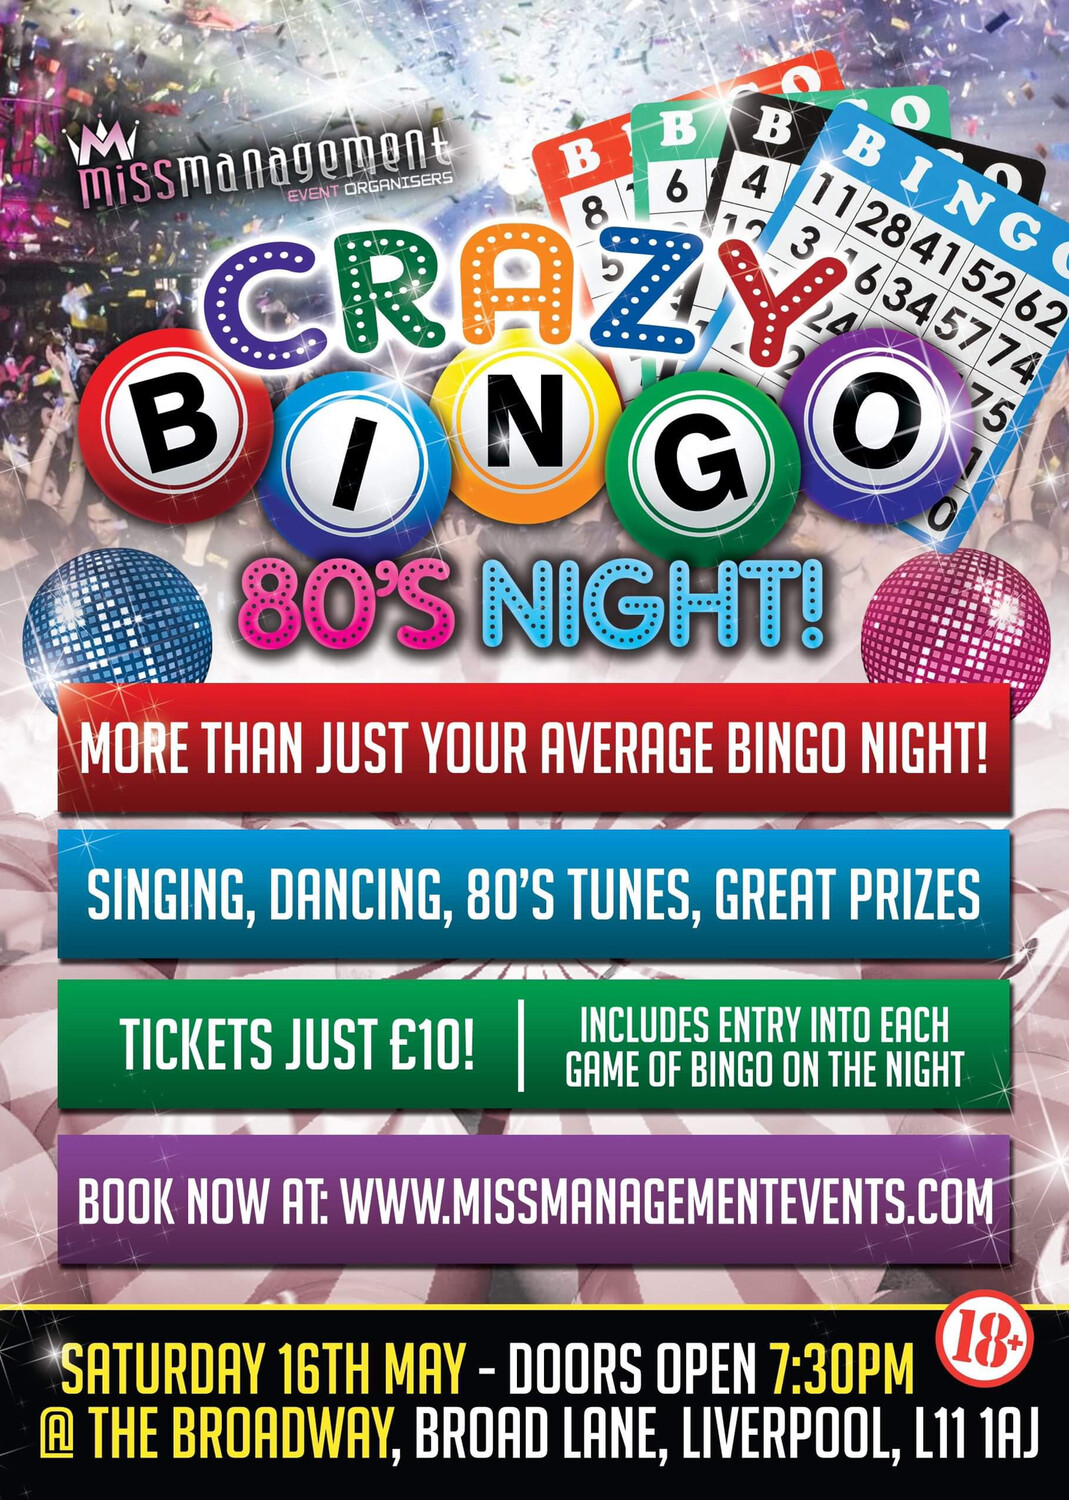 (CB010) 'Crazy Bingo' 80's Theme: Table For Ten (Liverpool) Saturday 16th May 2020